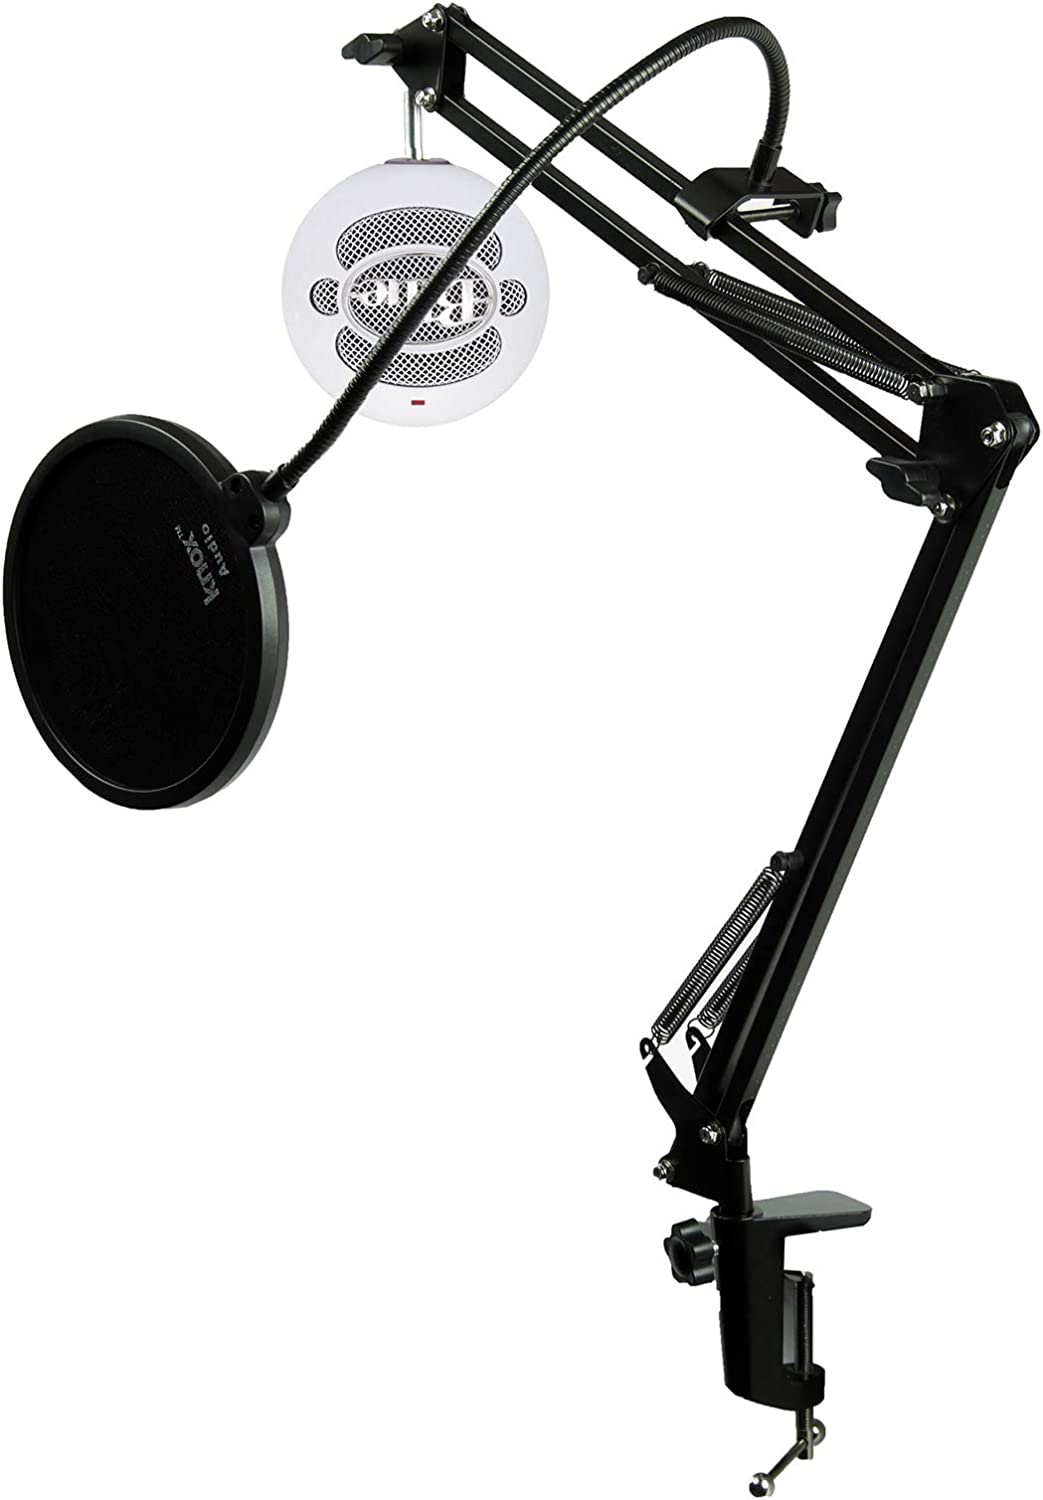 Blue Microphones Translated Snowball iCE USB Microphone with Studio Knox Max 69% OFF Ar